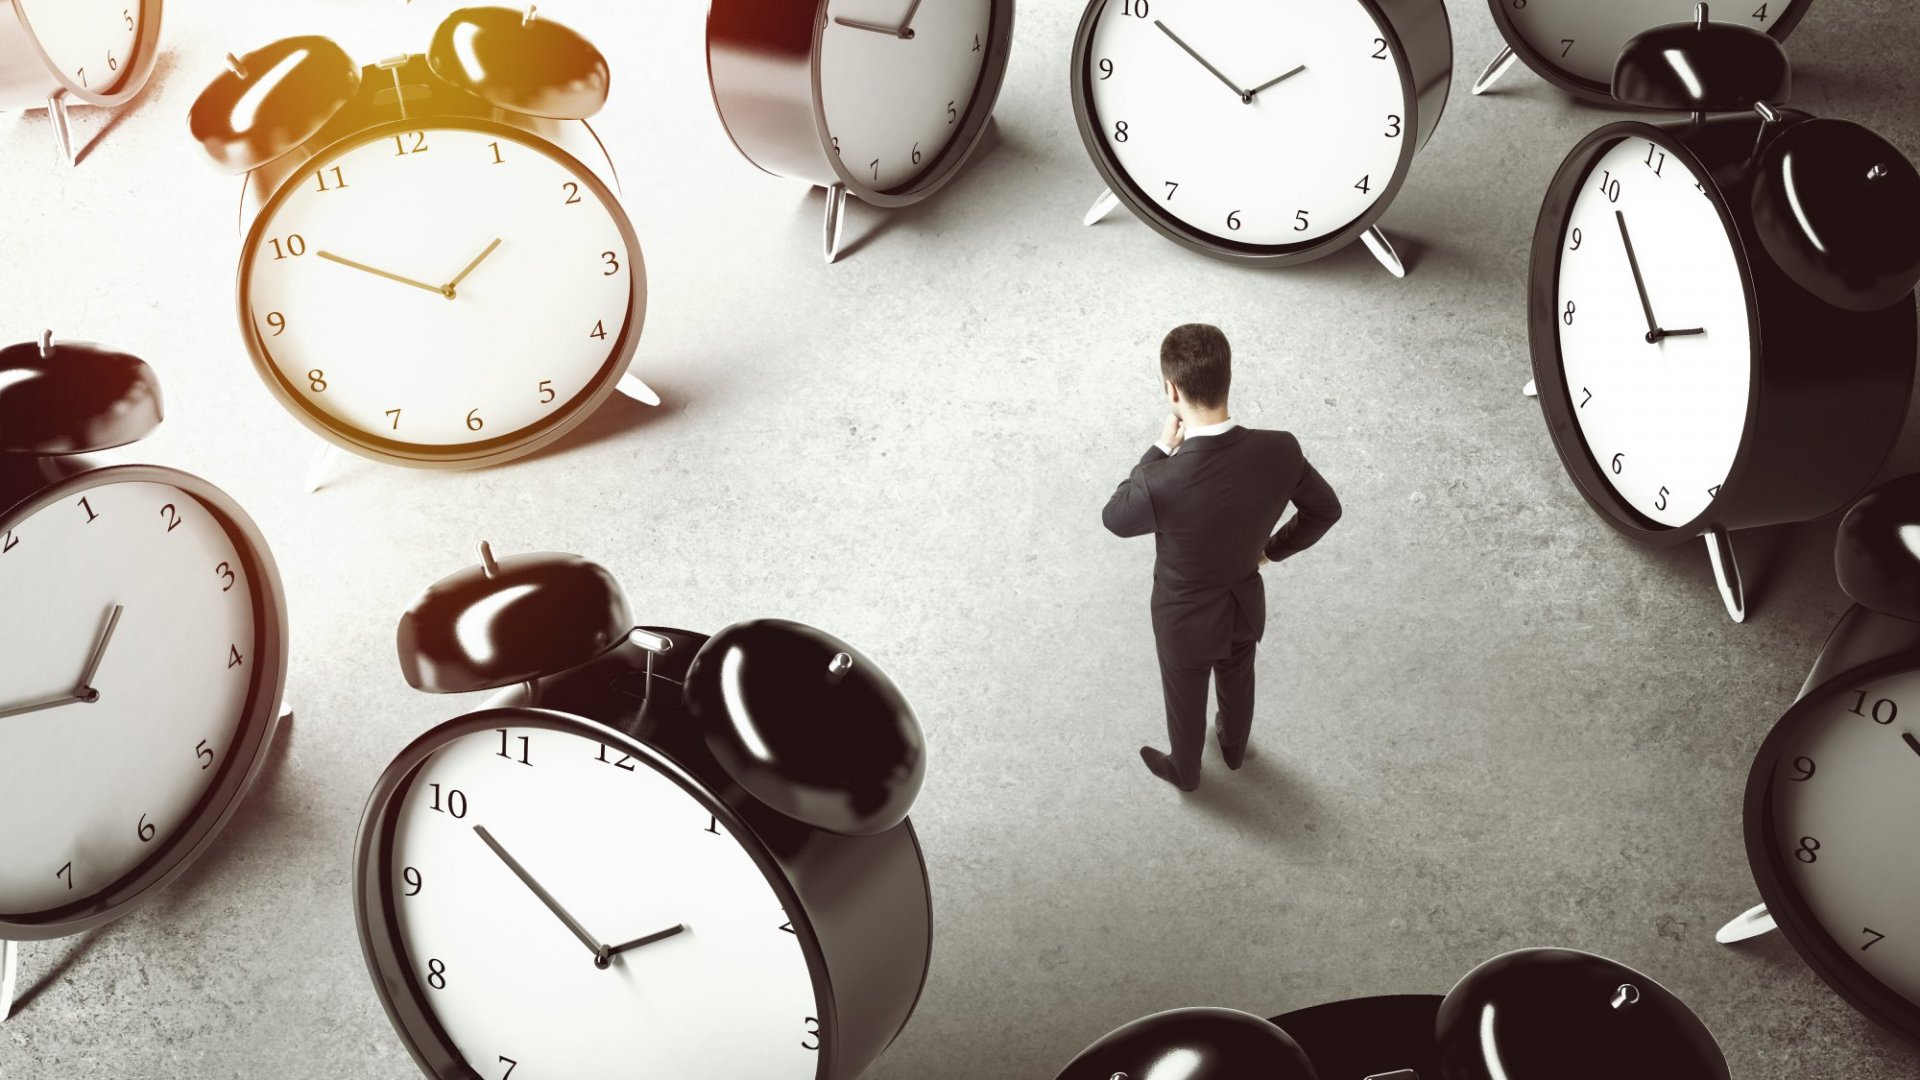 40 Useful Self-Management Hacks to Master Your Time